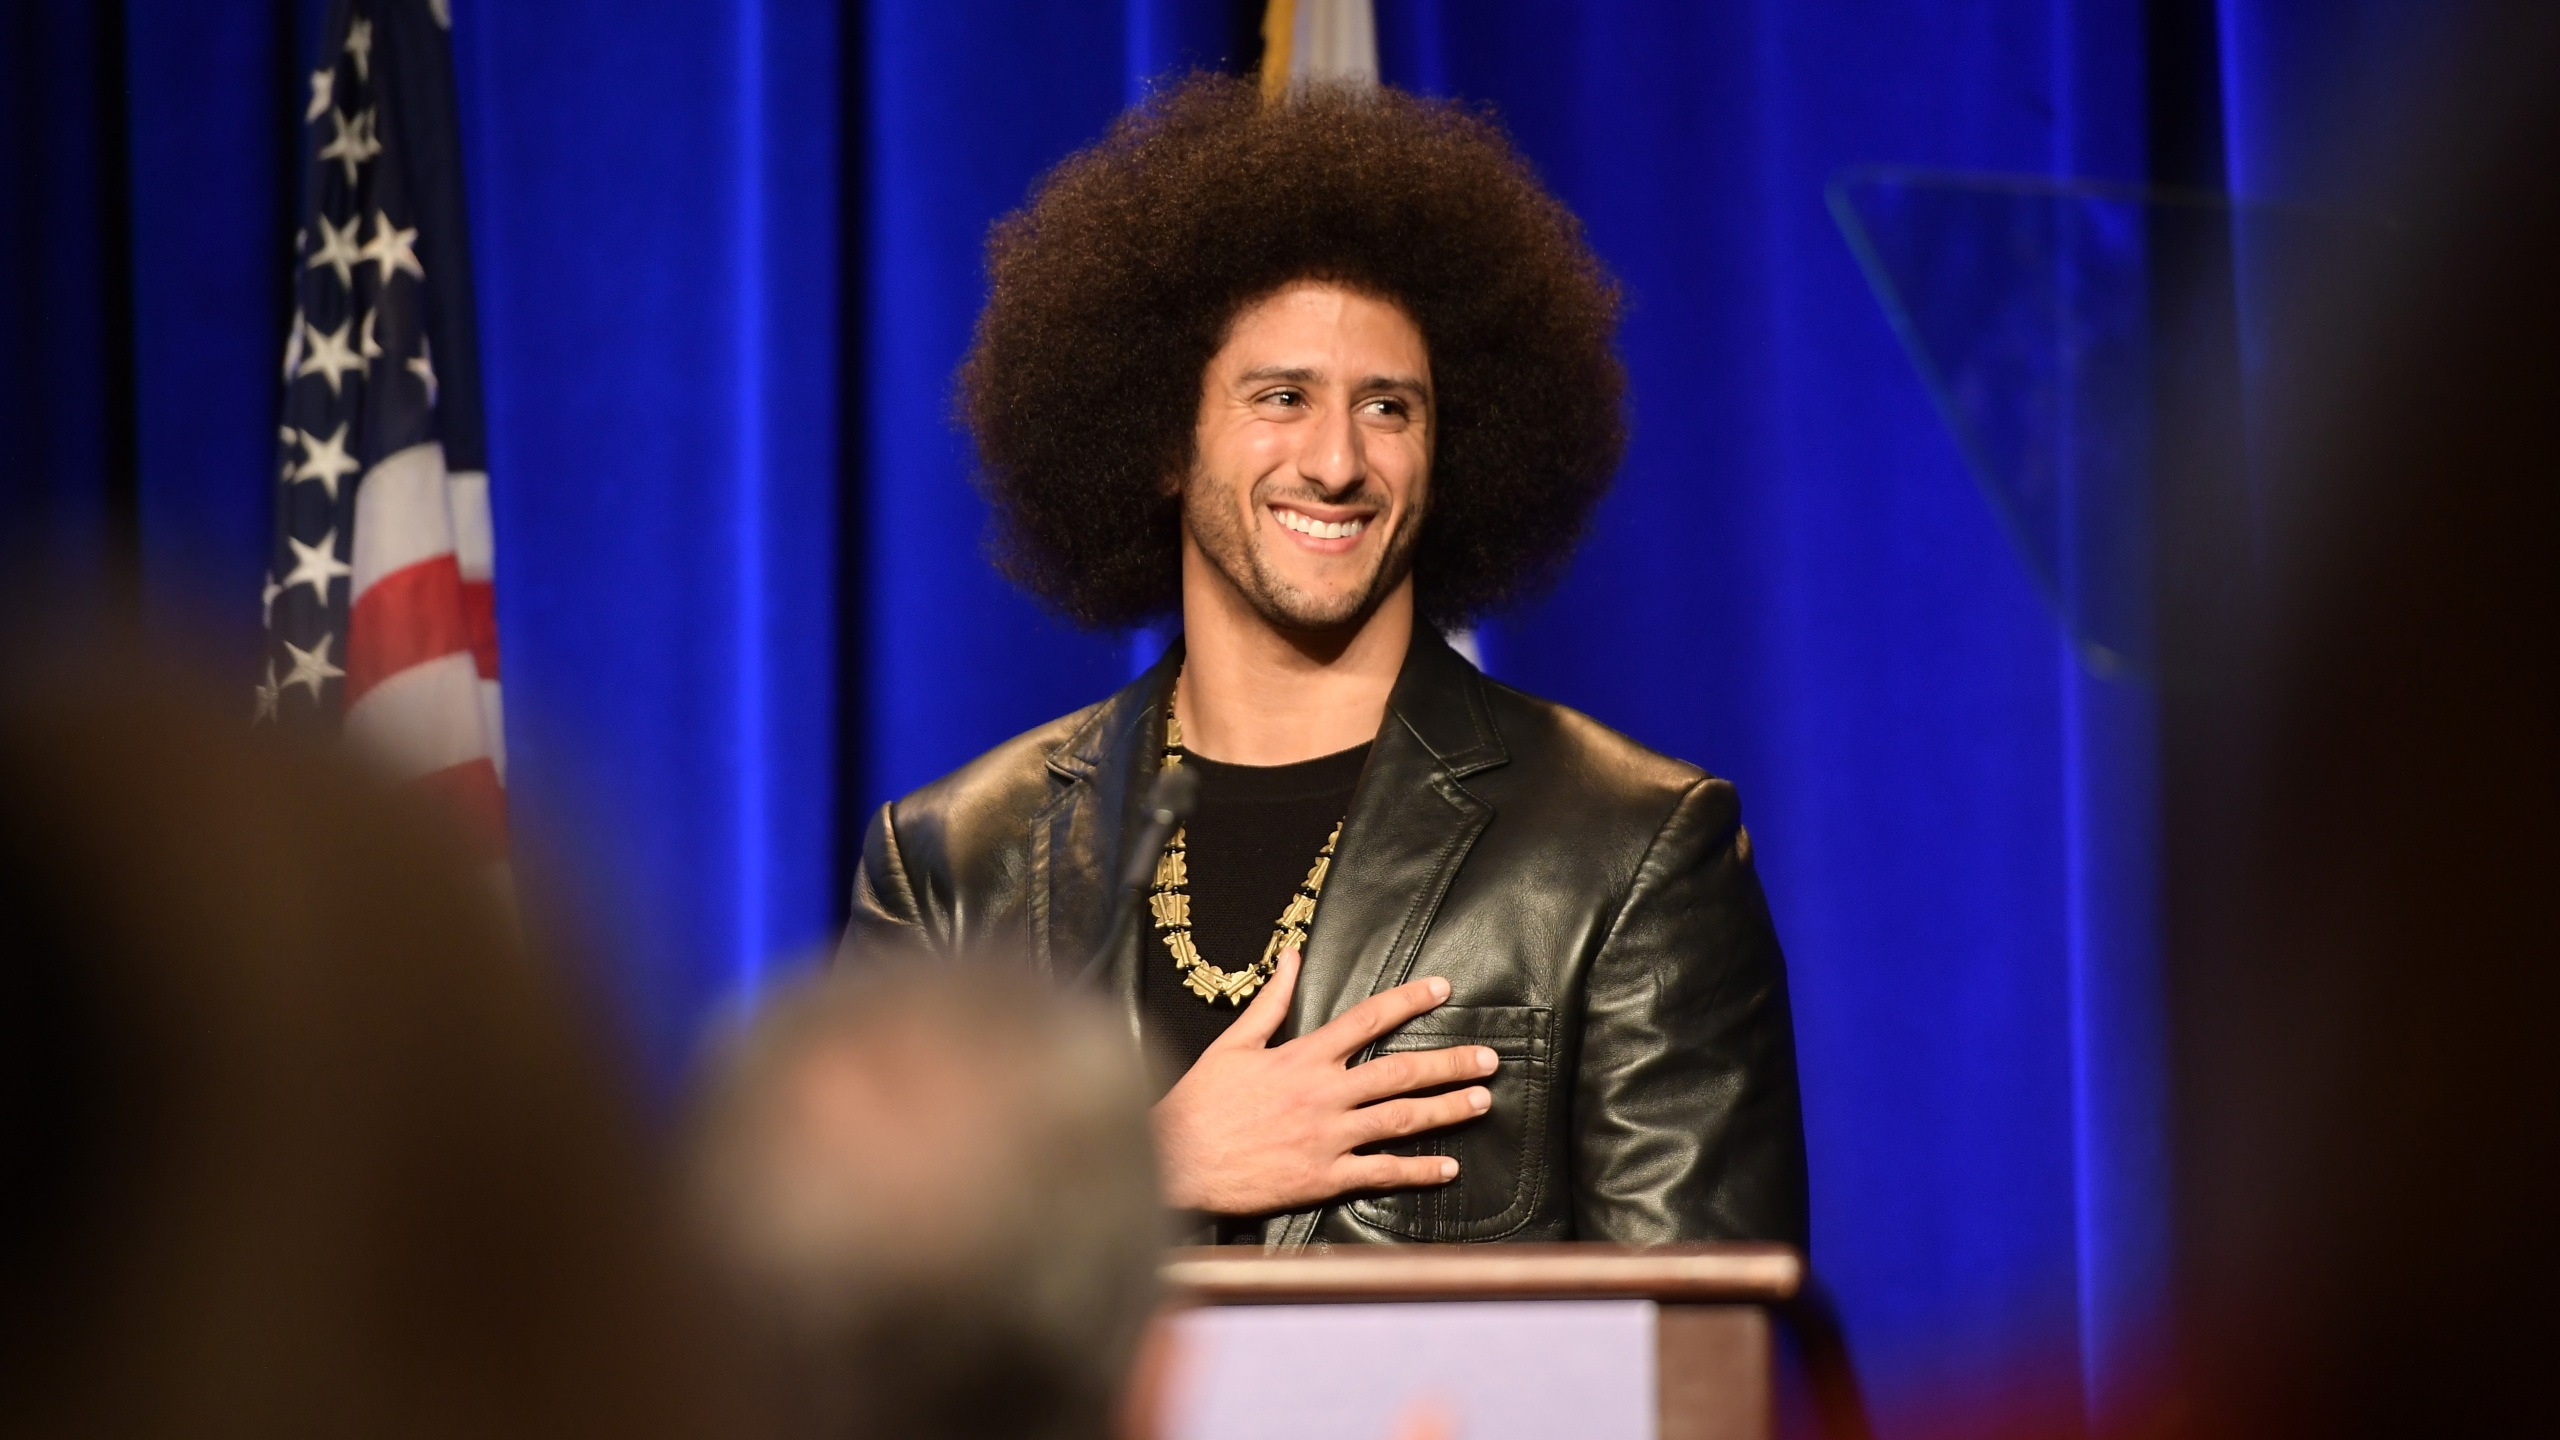 Honoree Colin Kaepernick speaks onstage at ACLU SoCal's annual Bill of Rights dinner at the Beverly Wilshire Four Seasons Hotel on Dec. 3, 2017. (Credit: Matt Winkelmeyer / Getty Images)